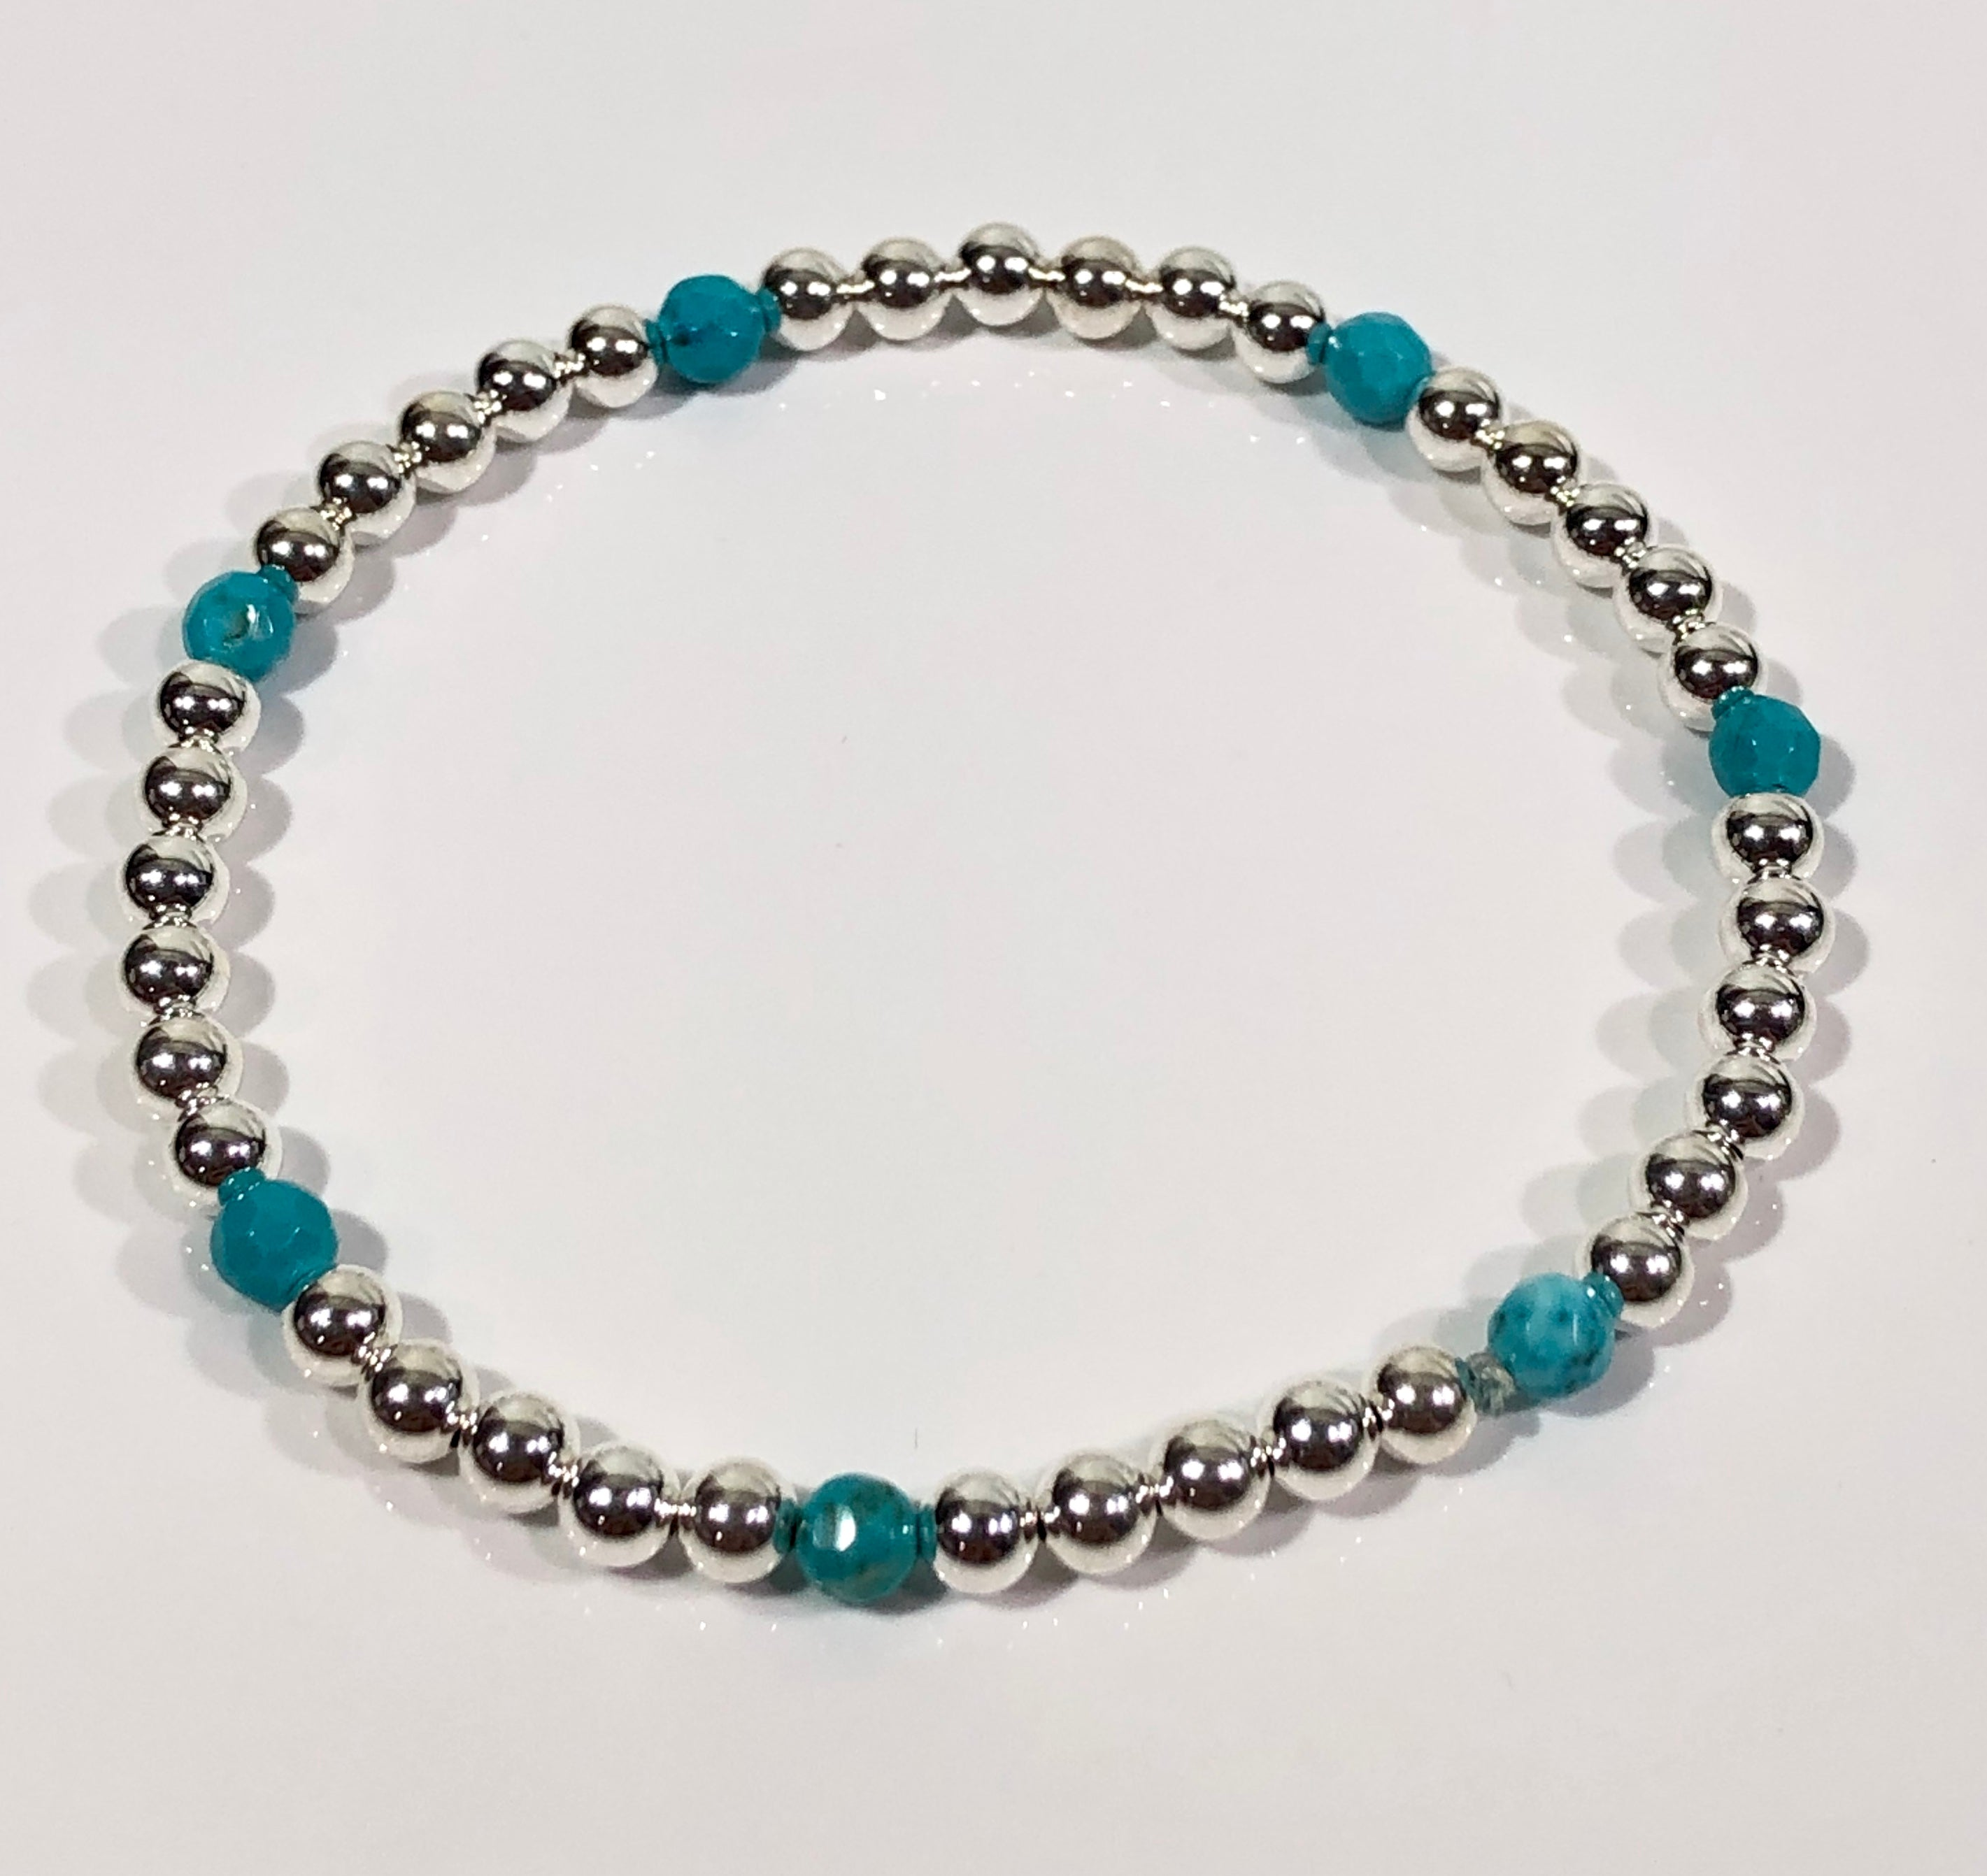 4mm Sterling Silver Bracelet with Turquoise Blue Beads